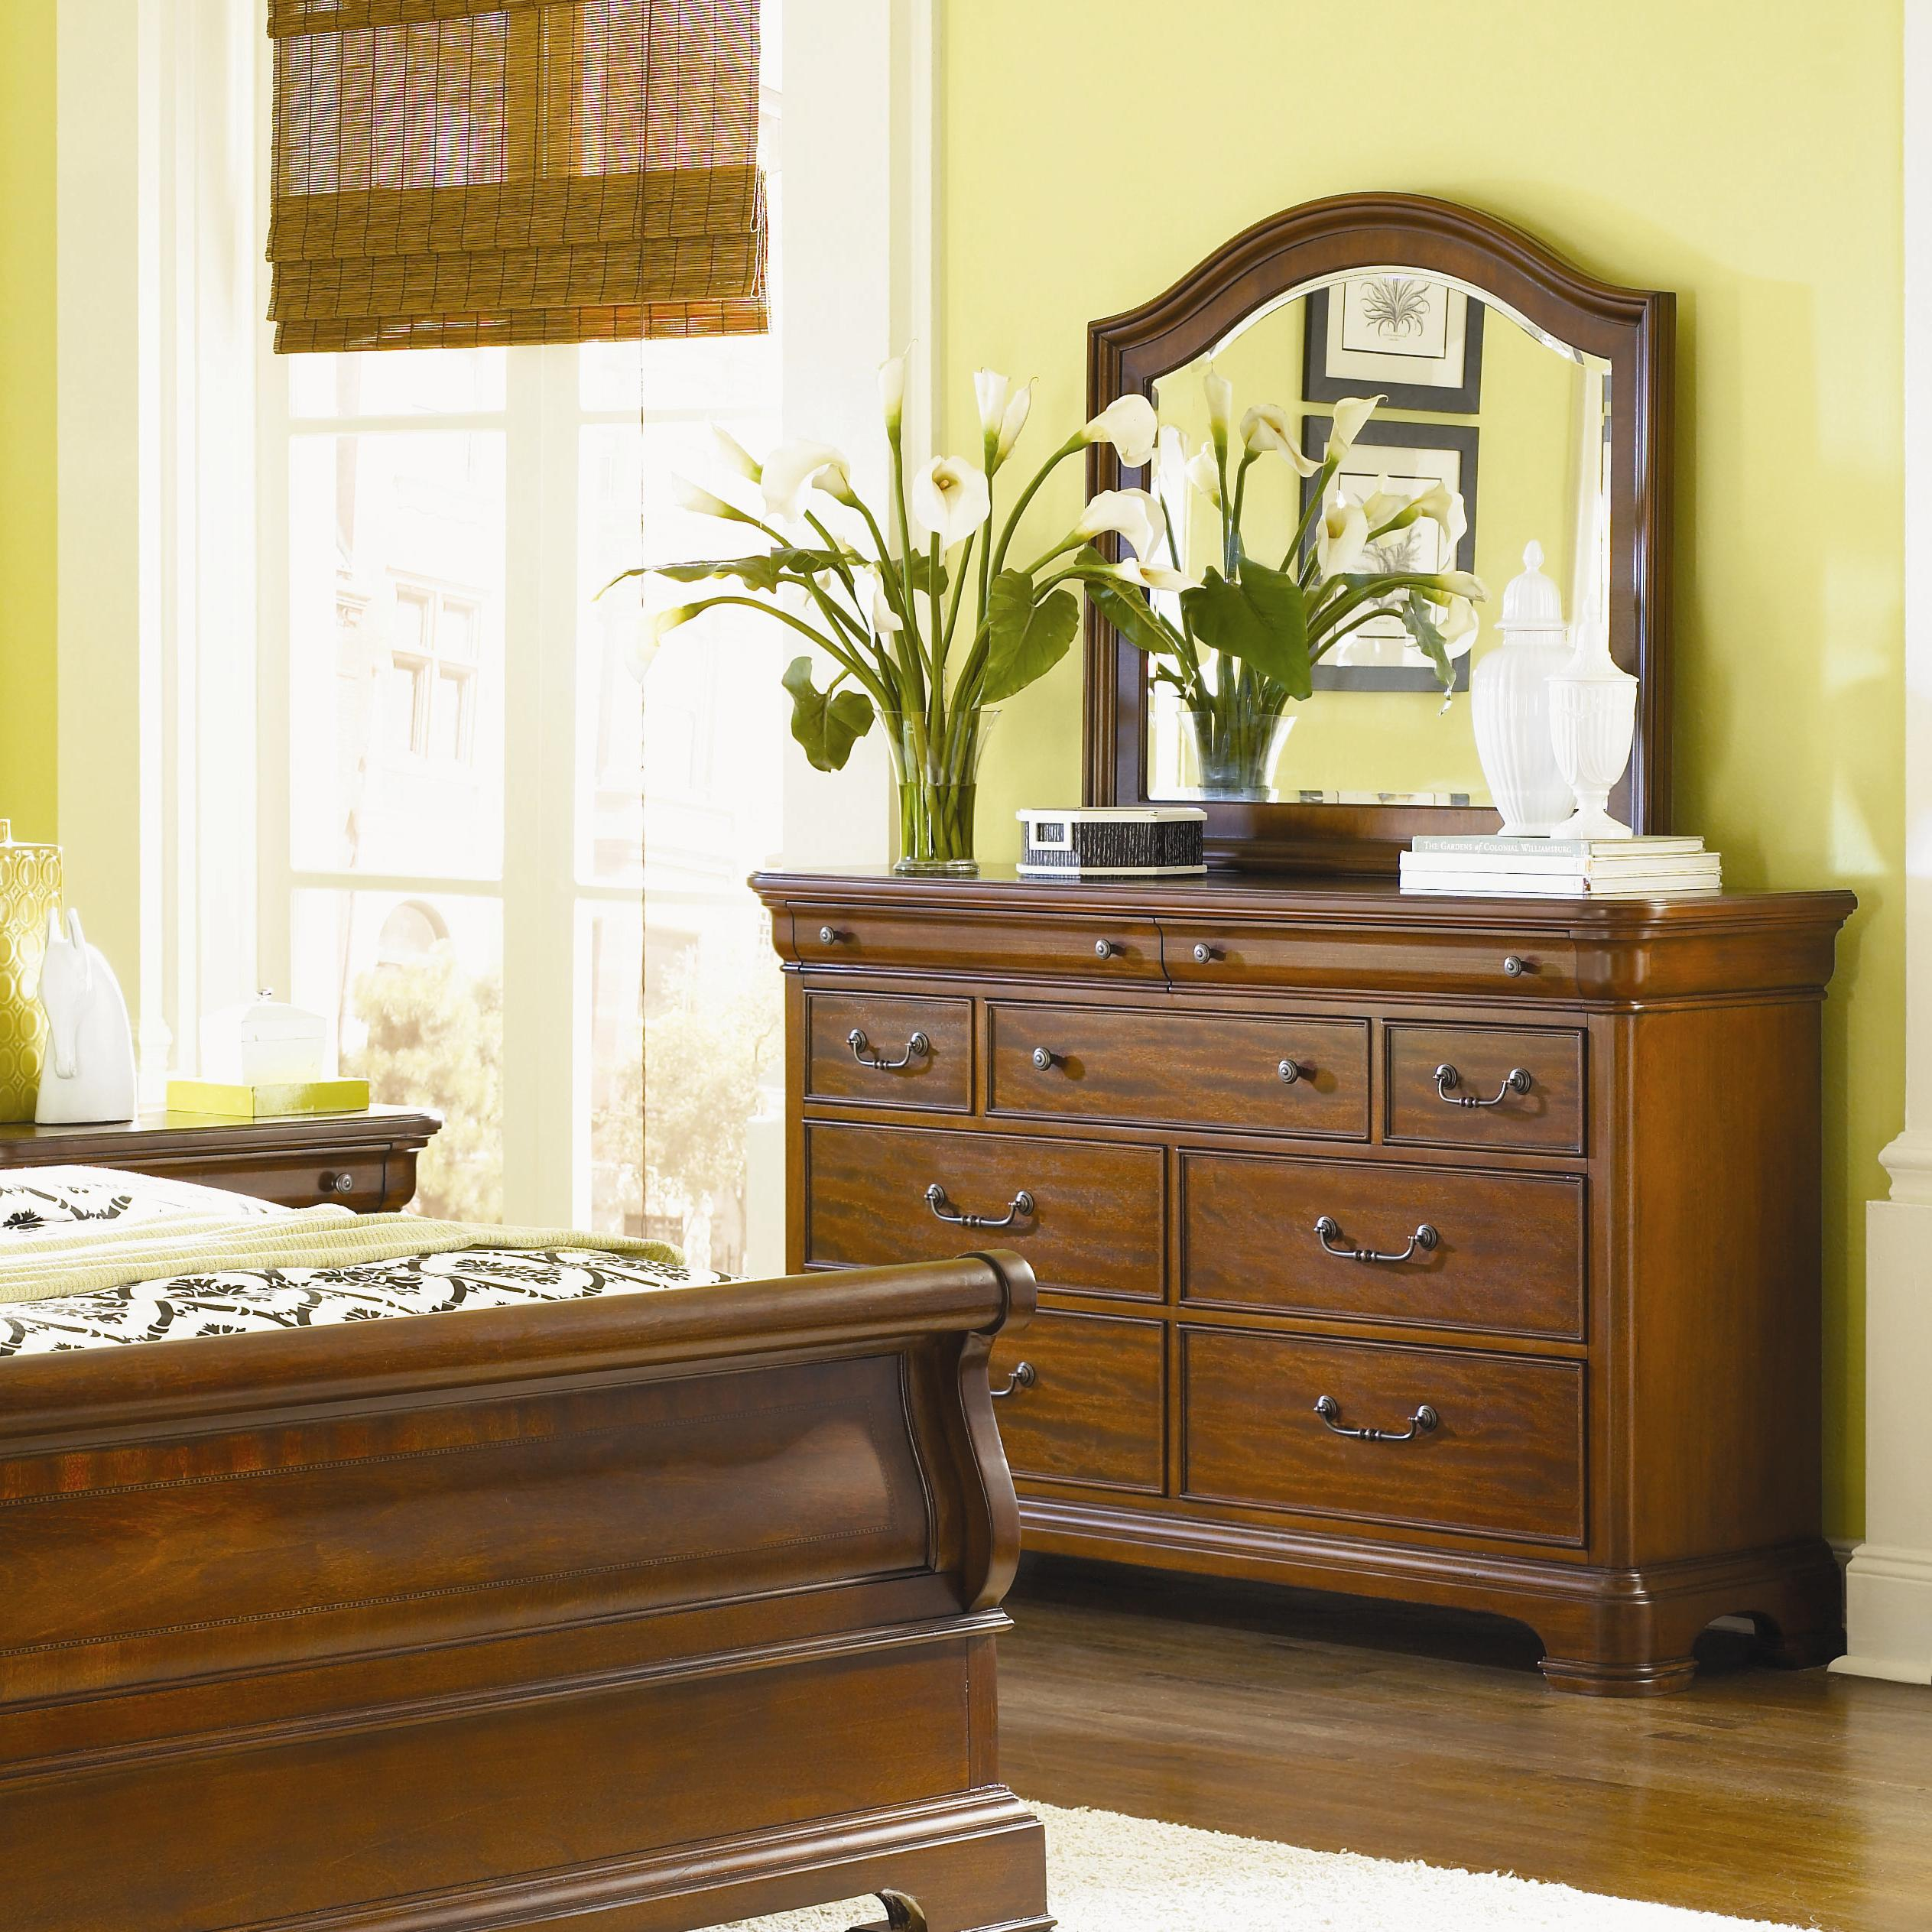 9 drawer dresser mirror combo by legacy classic wolf and gardiner wolf furniture. Black Bedroom Furniture Sets. Home Design Ideas